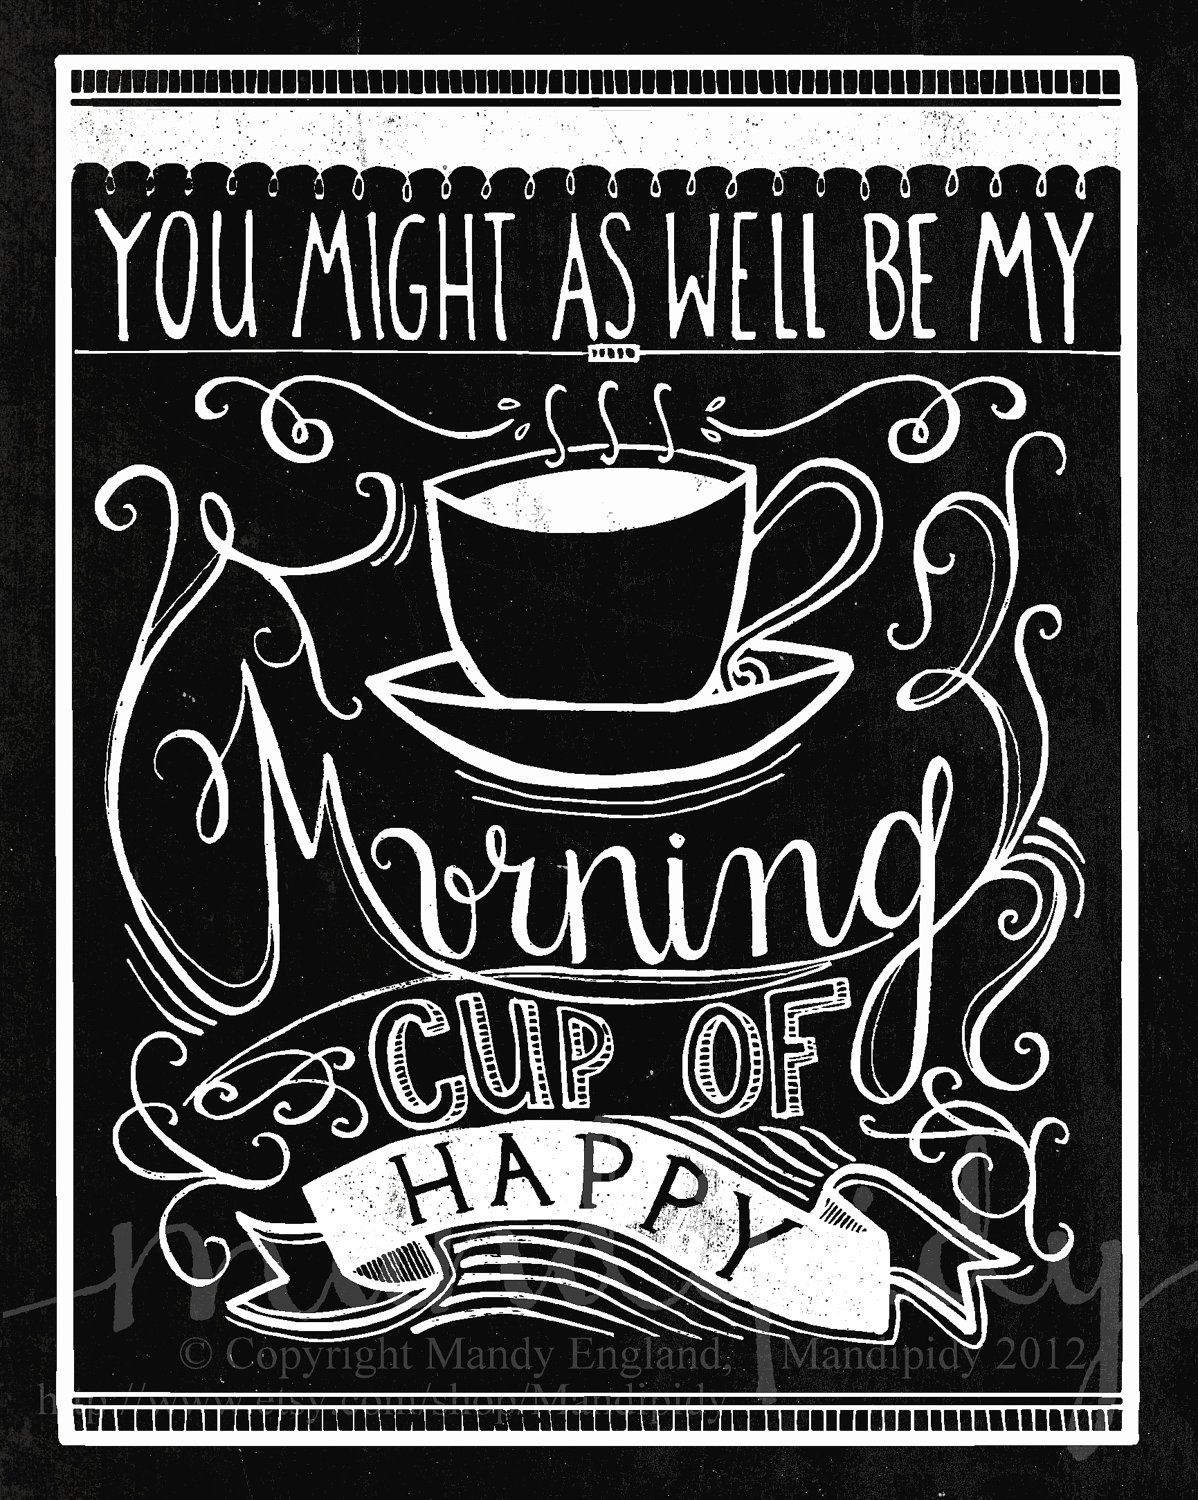 You Might As Well Be My Morning Cup of Happy - 8x10 Original Illustrated Pint by Mandipidy. $17.50, via Etsy.